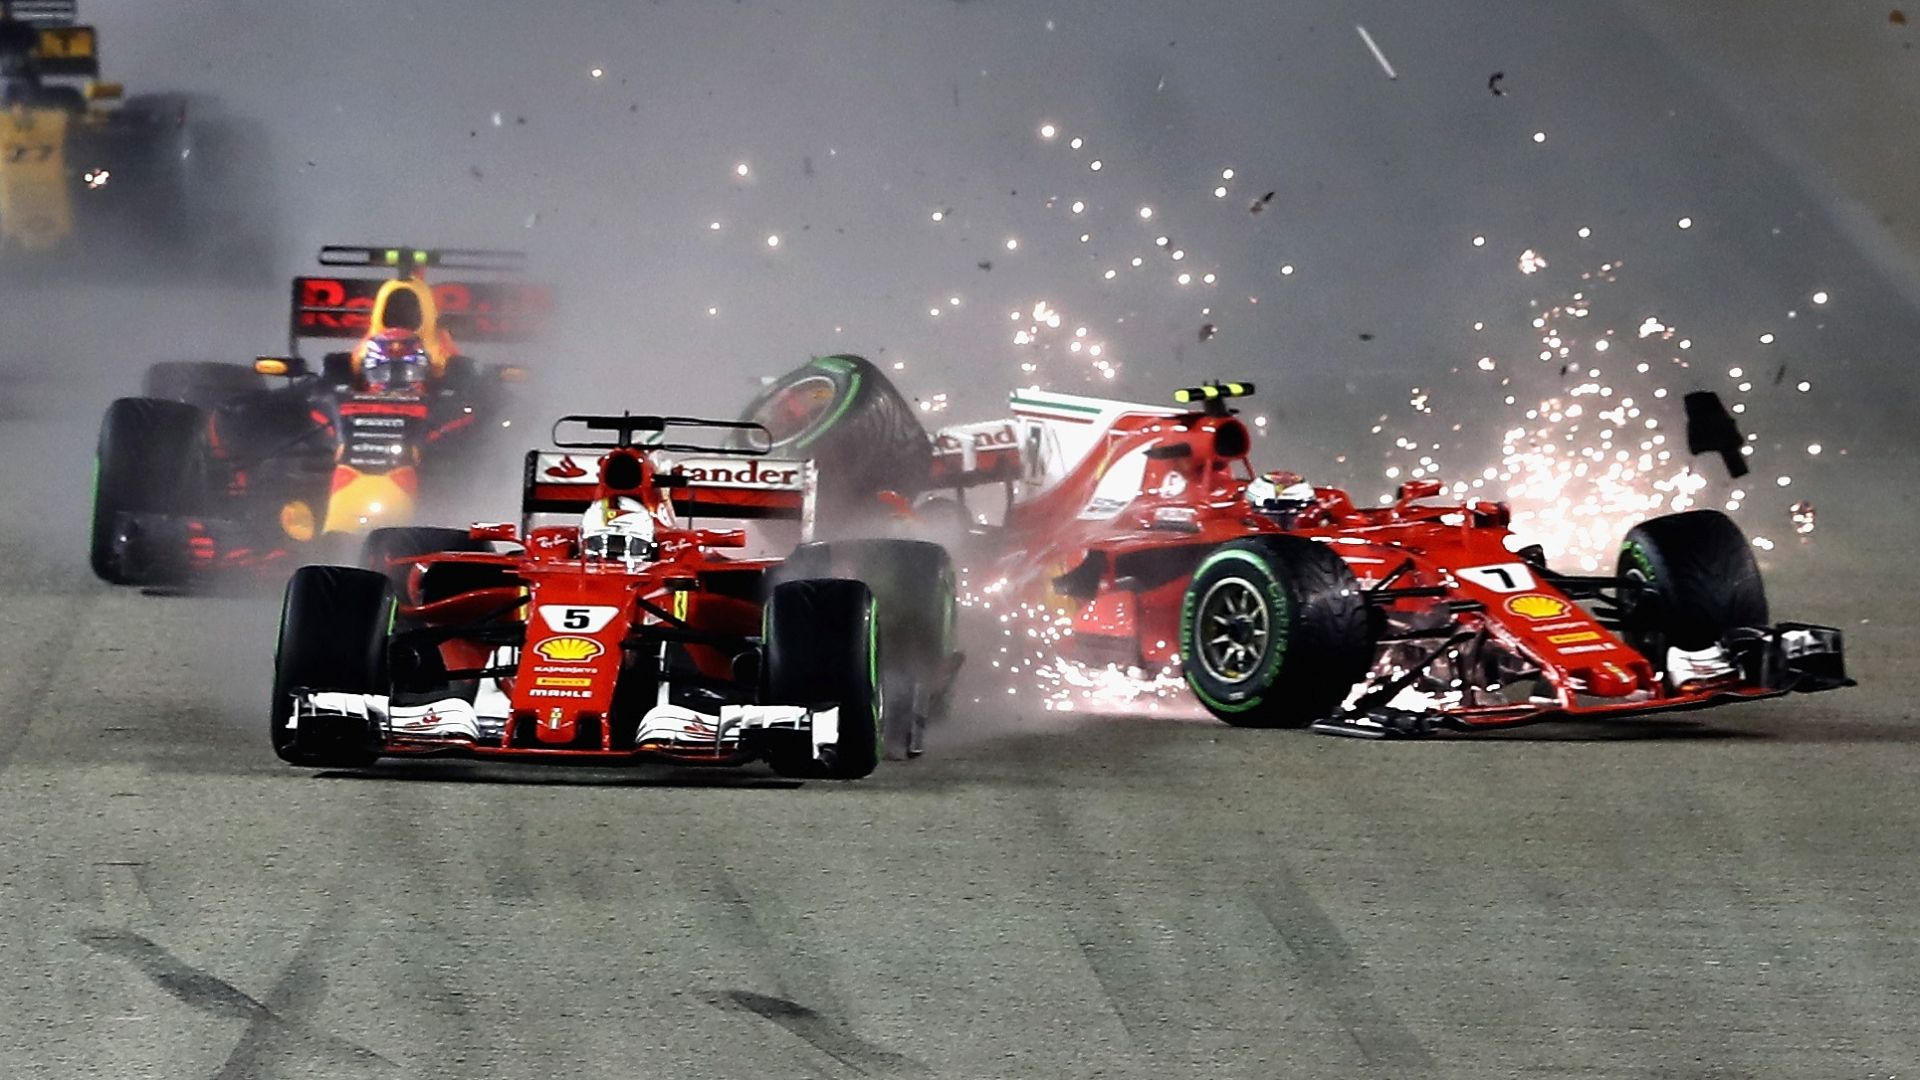 Who said what after the 2017 Singapore Grand Prix